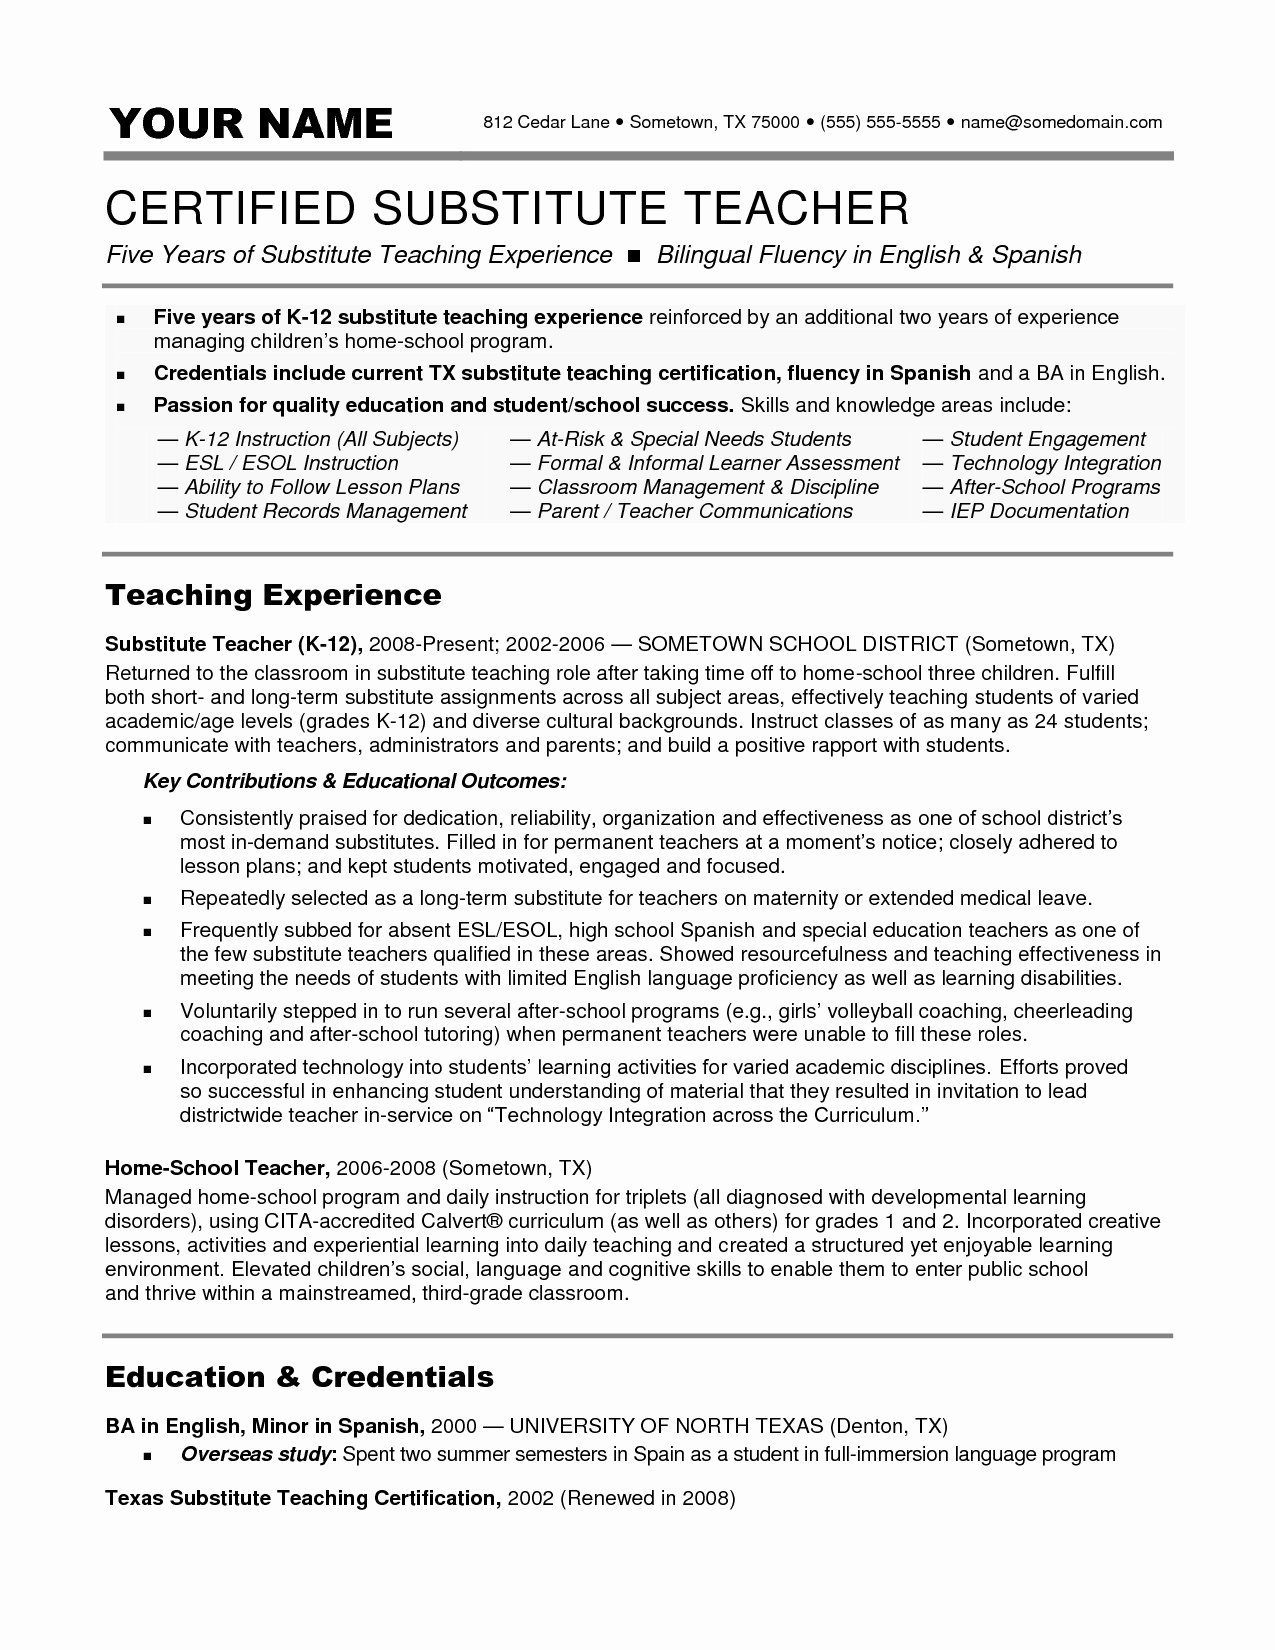 Resume for A Substitute Teacher Resume Ideas